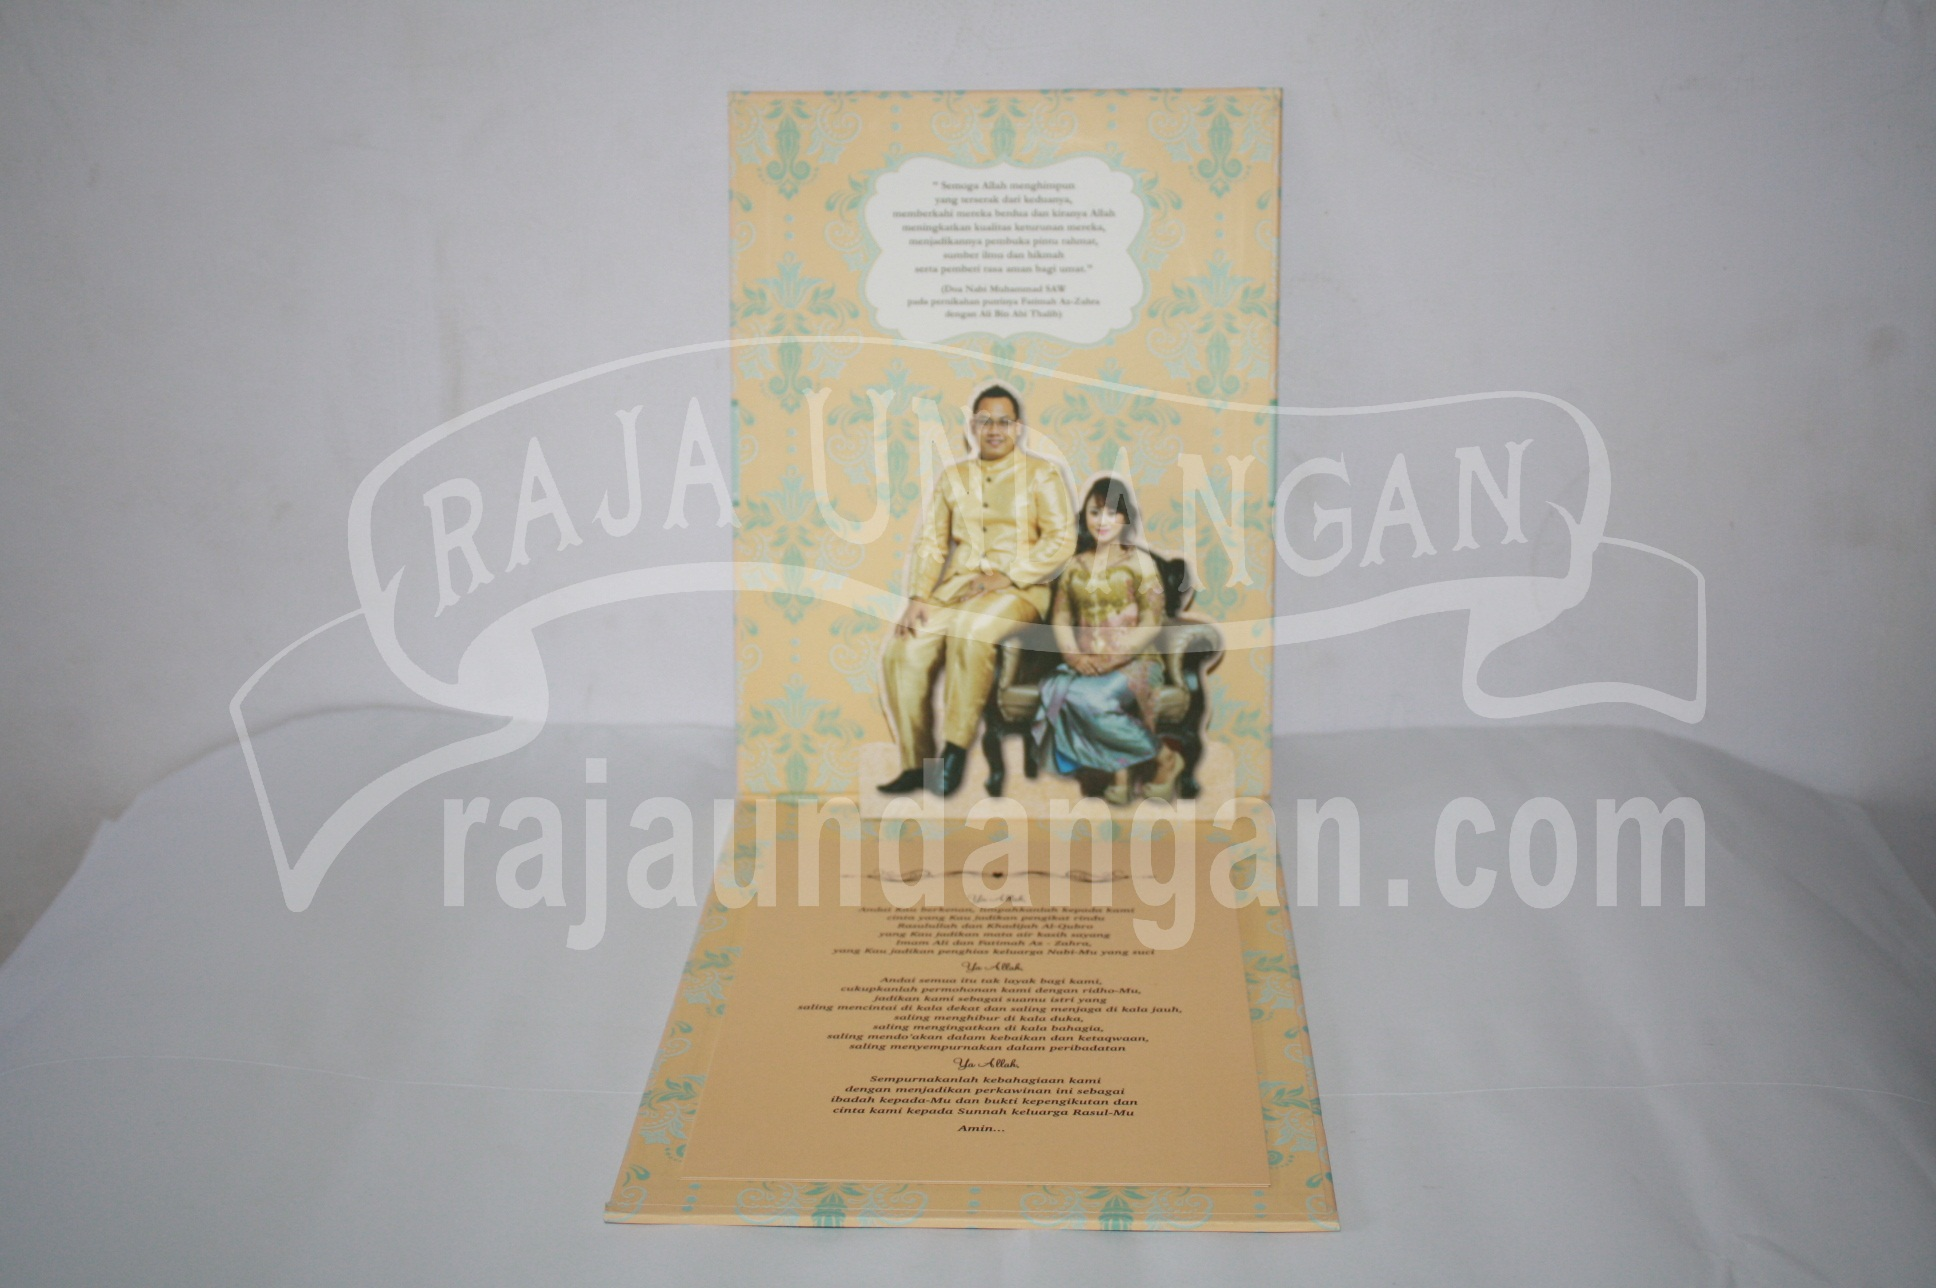 Undangan Pernikahan Hardcover Pop Up Pakai Amplop Yudha dan Devina EDC 47 2 - Percetakan Wedding Invitations Eksklusif di Dukuh Setro